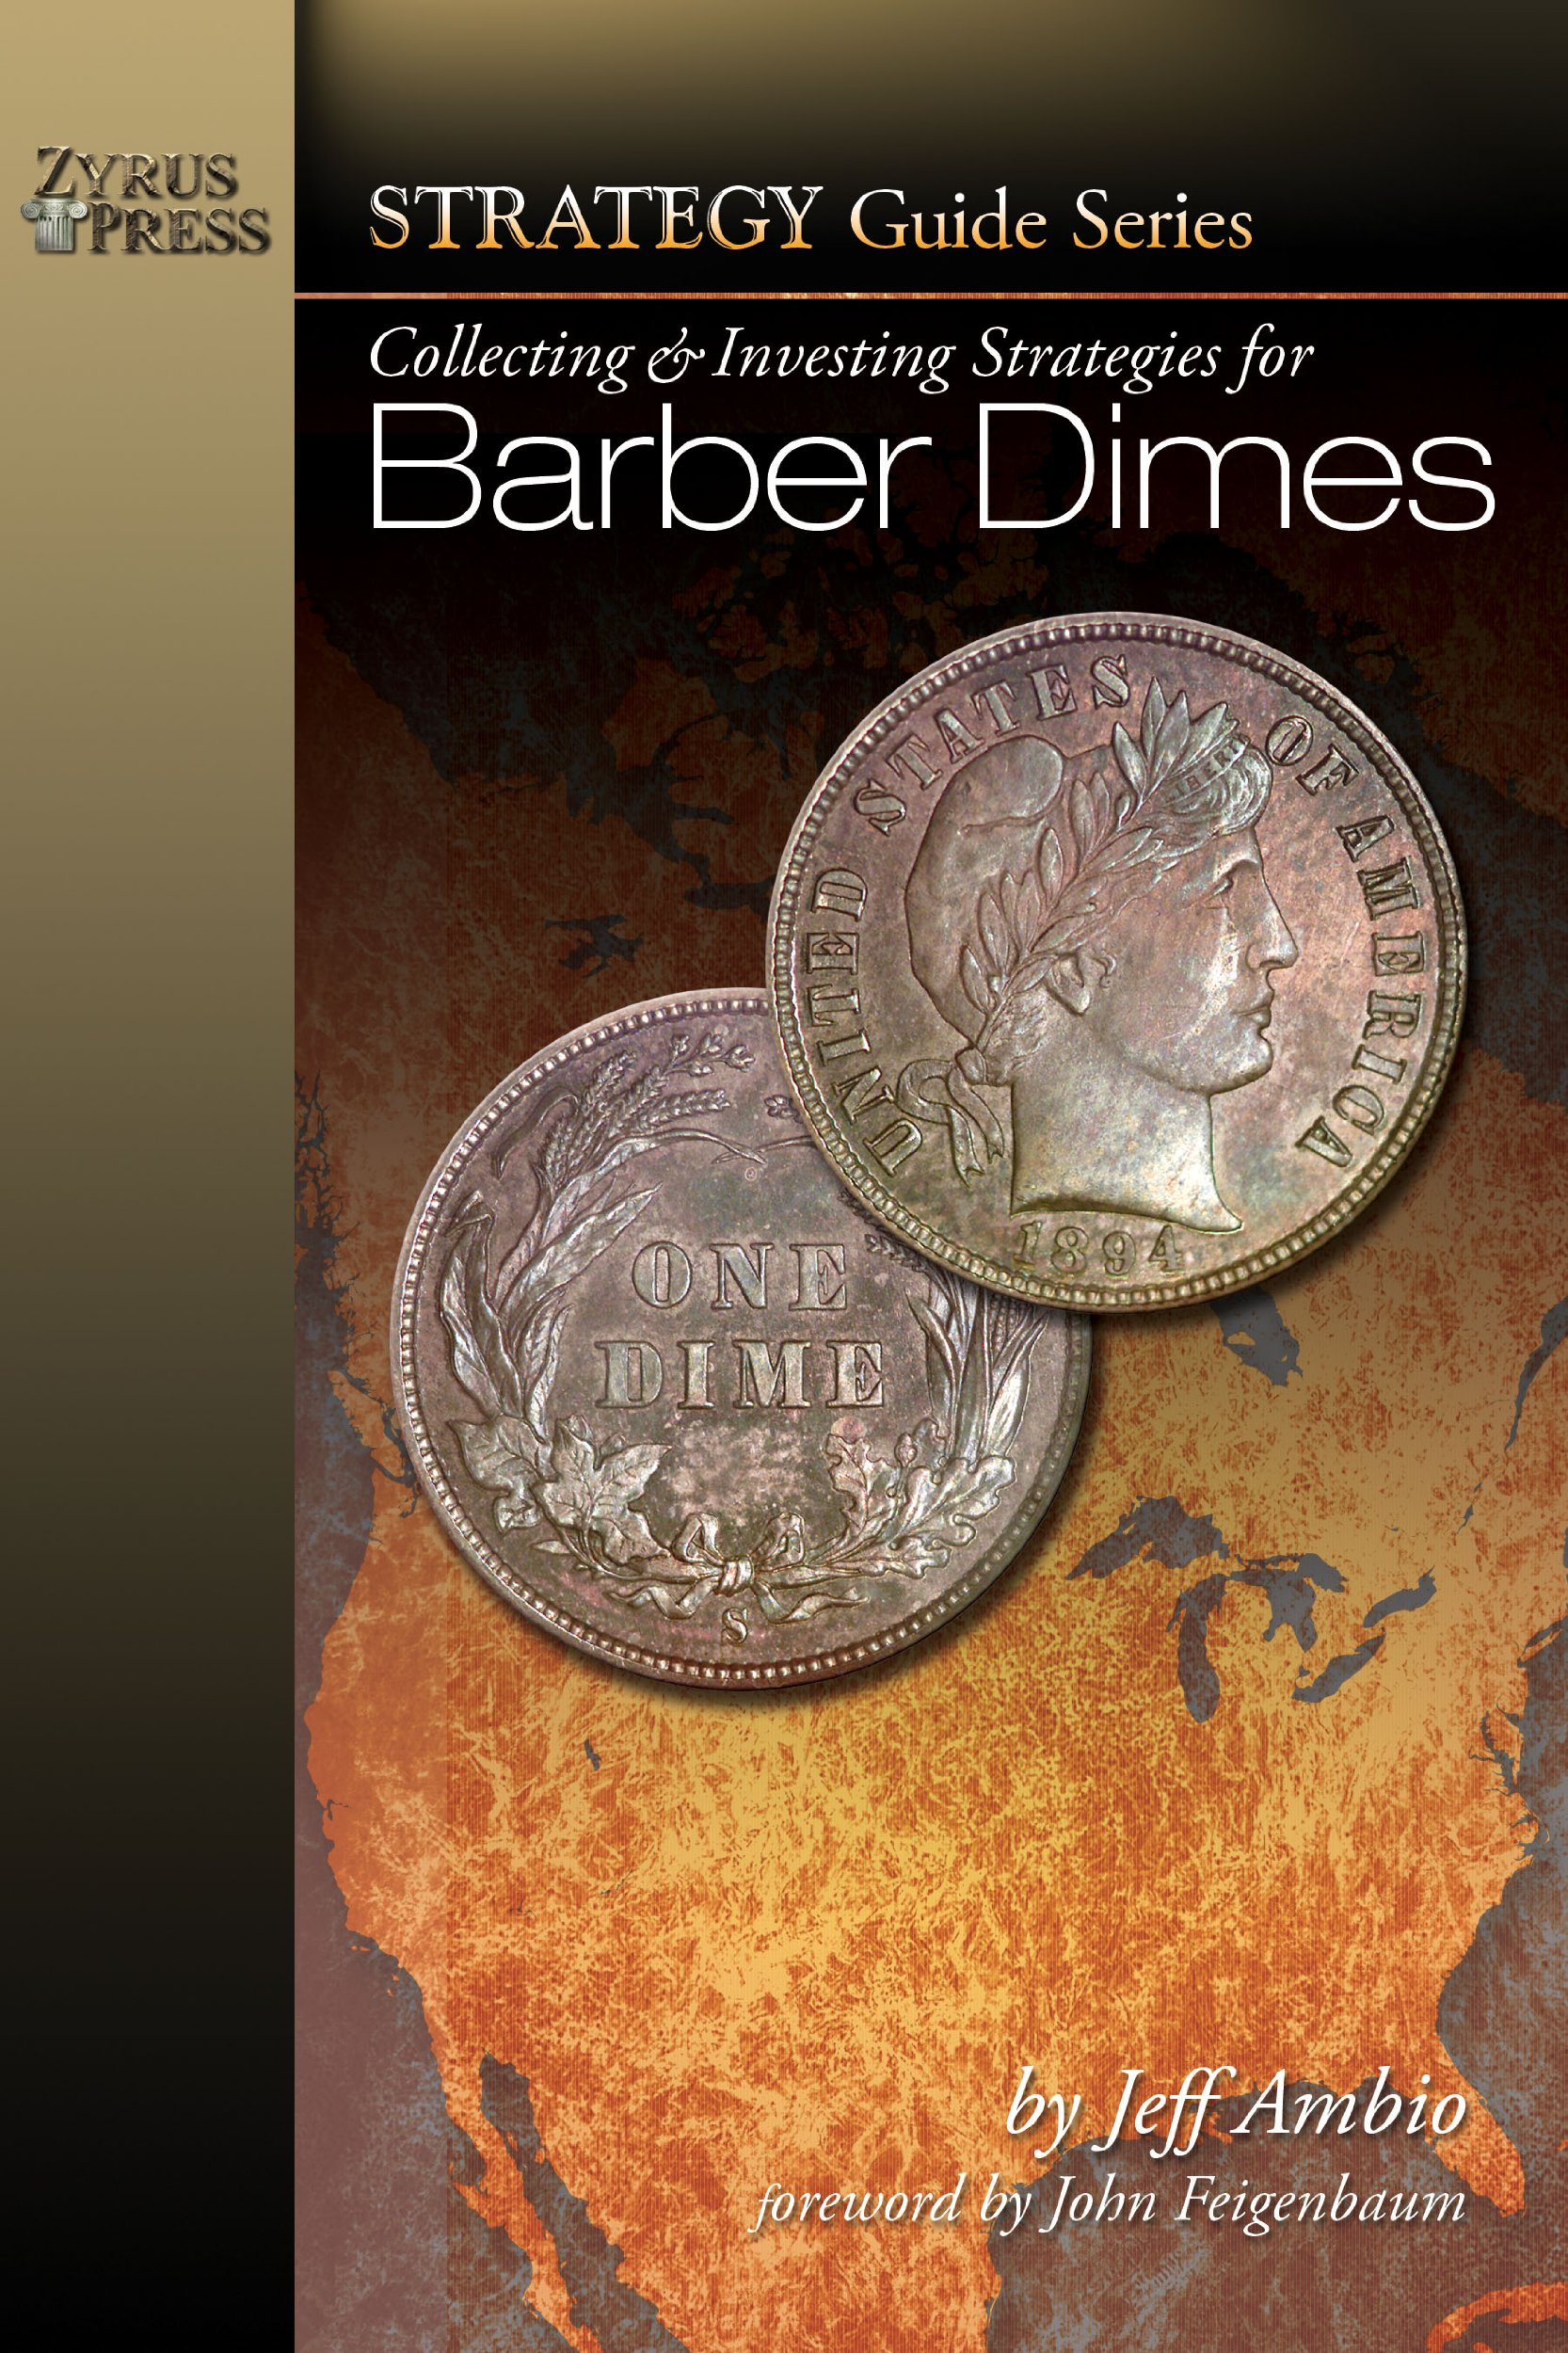 Collecting & Investing Strategies for Barber Dimes (Strategy Guide Series)